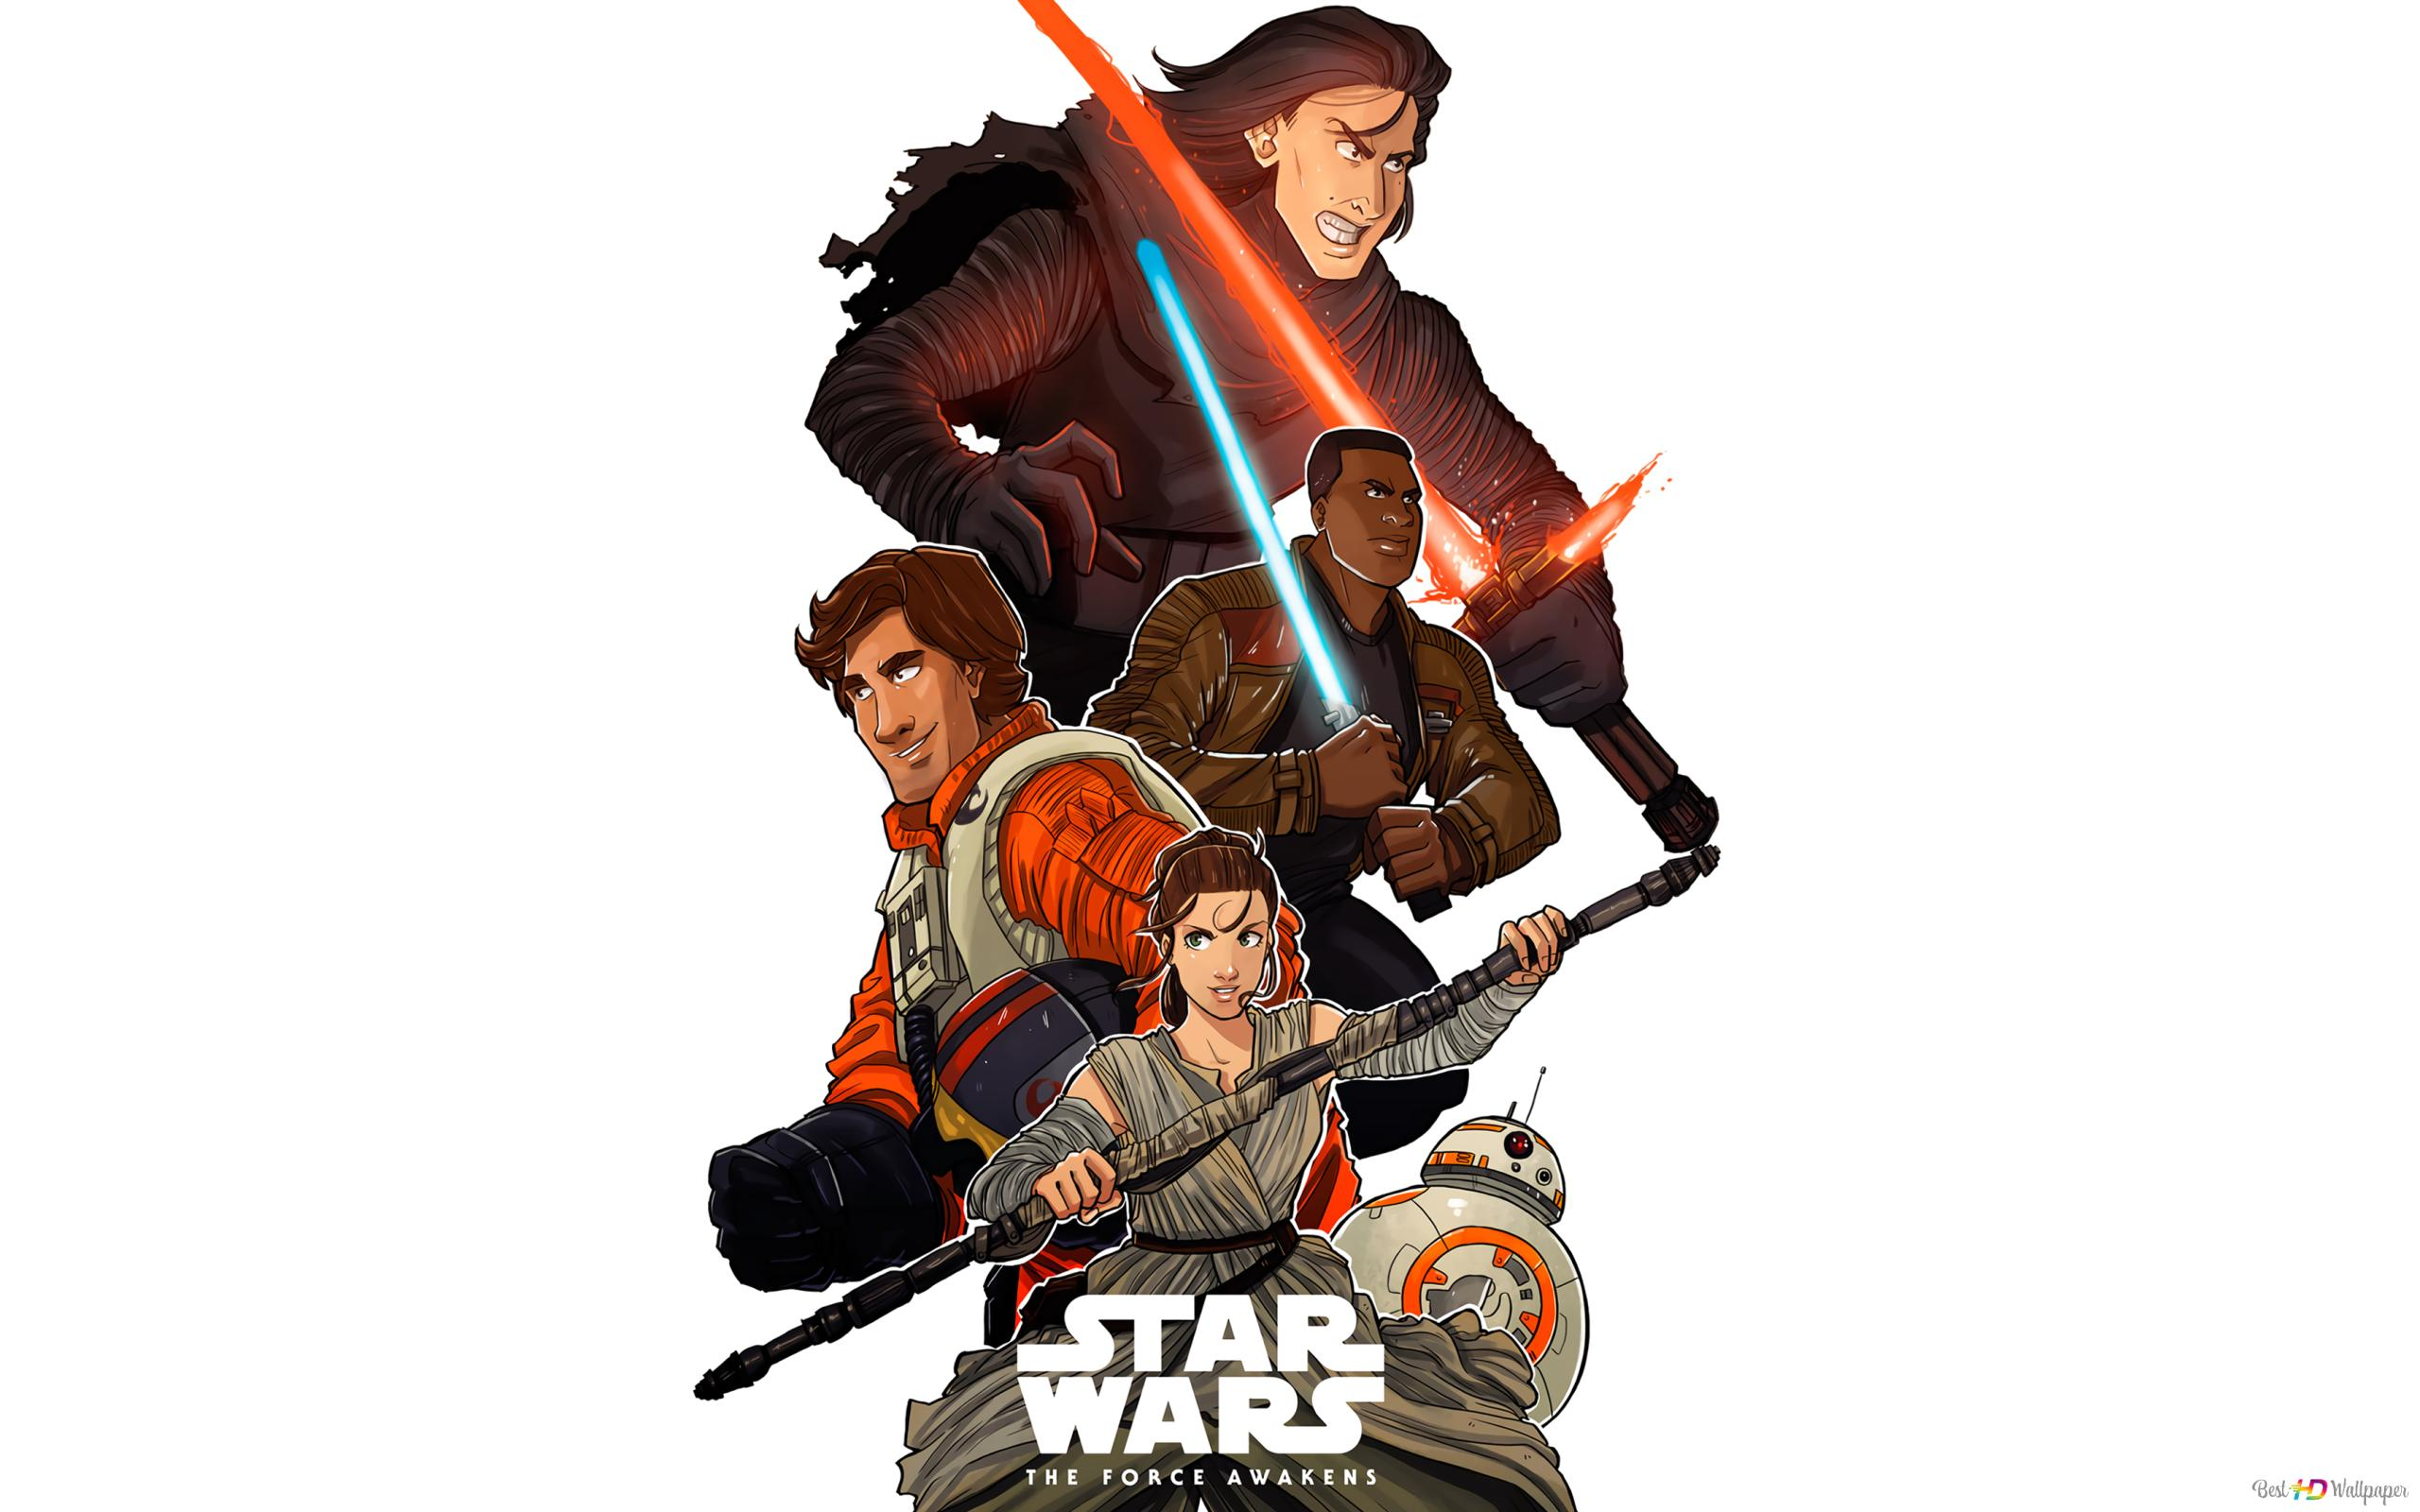 Star Wars Vii The Force Awakens Animated Hd Wallpaper Download